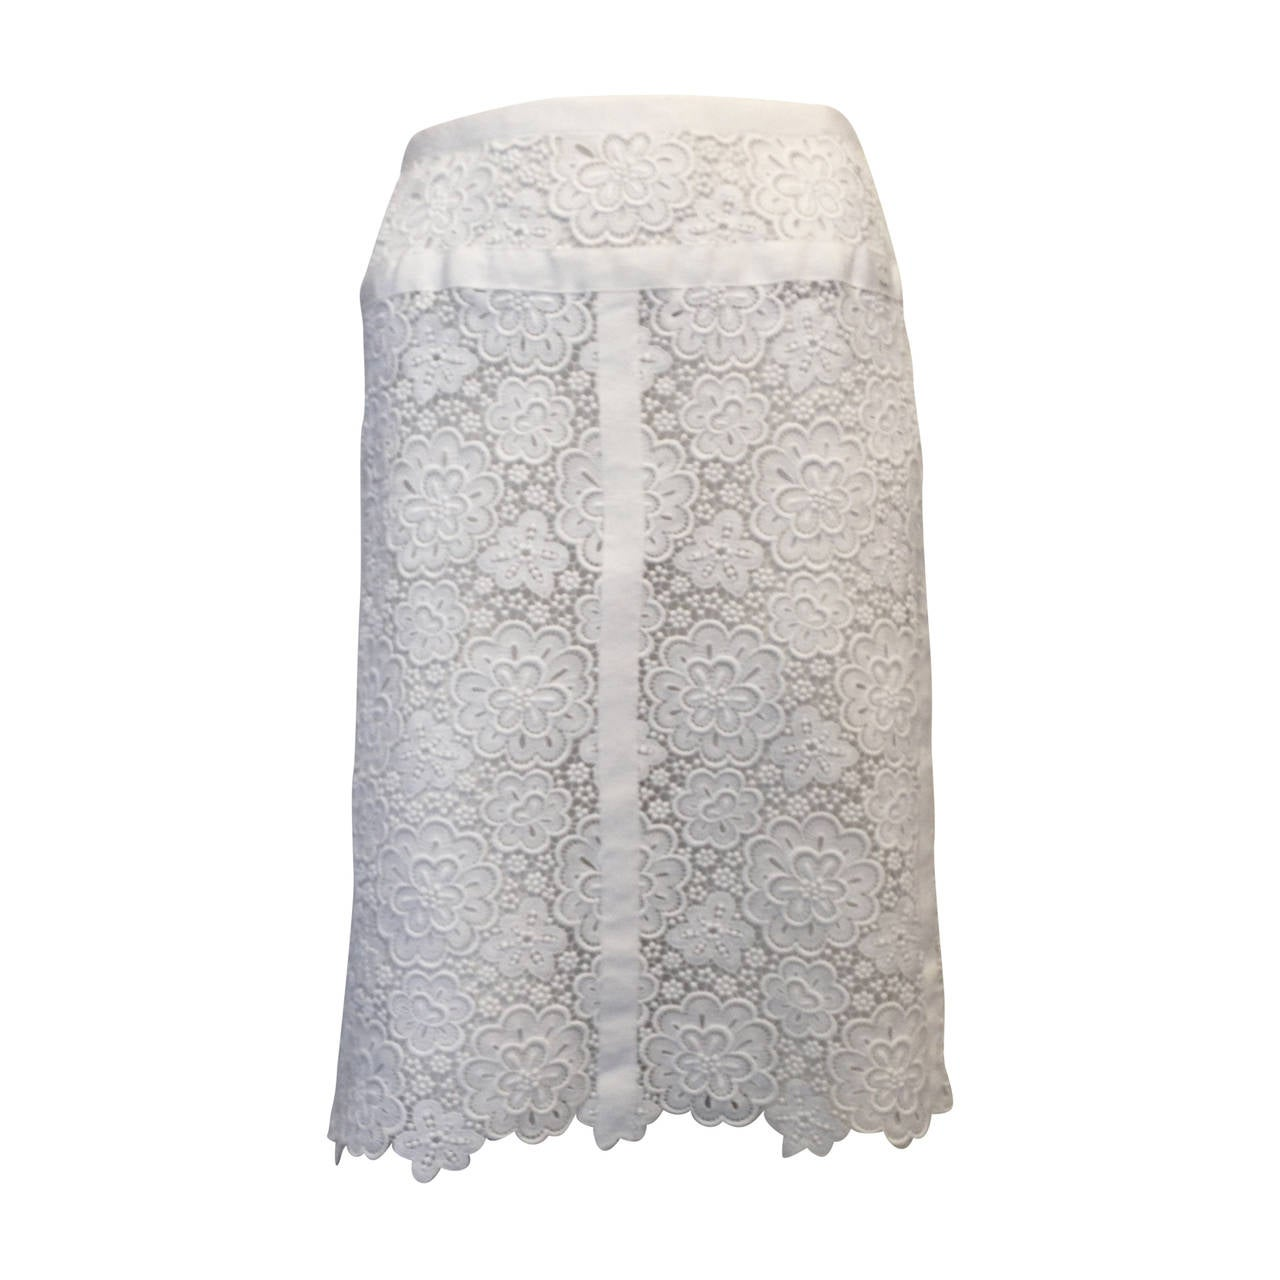 Chanel White Lace Skirt